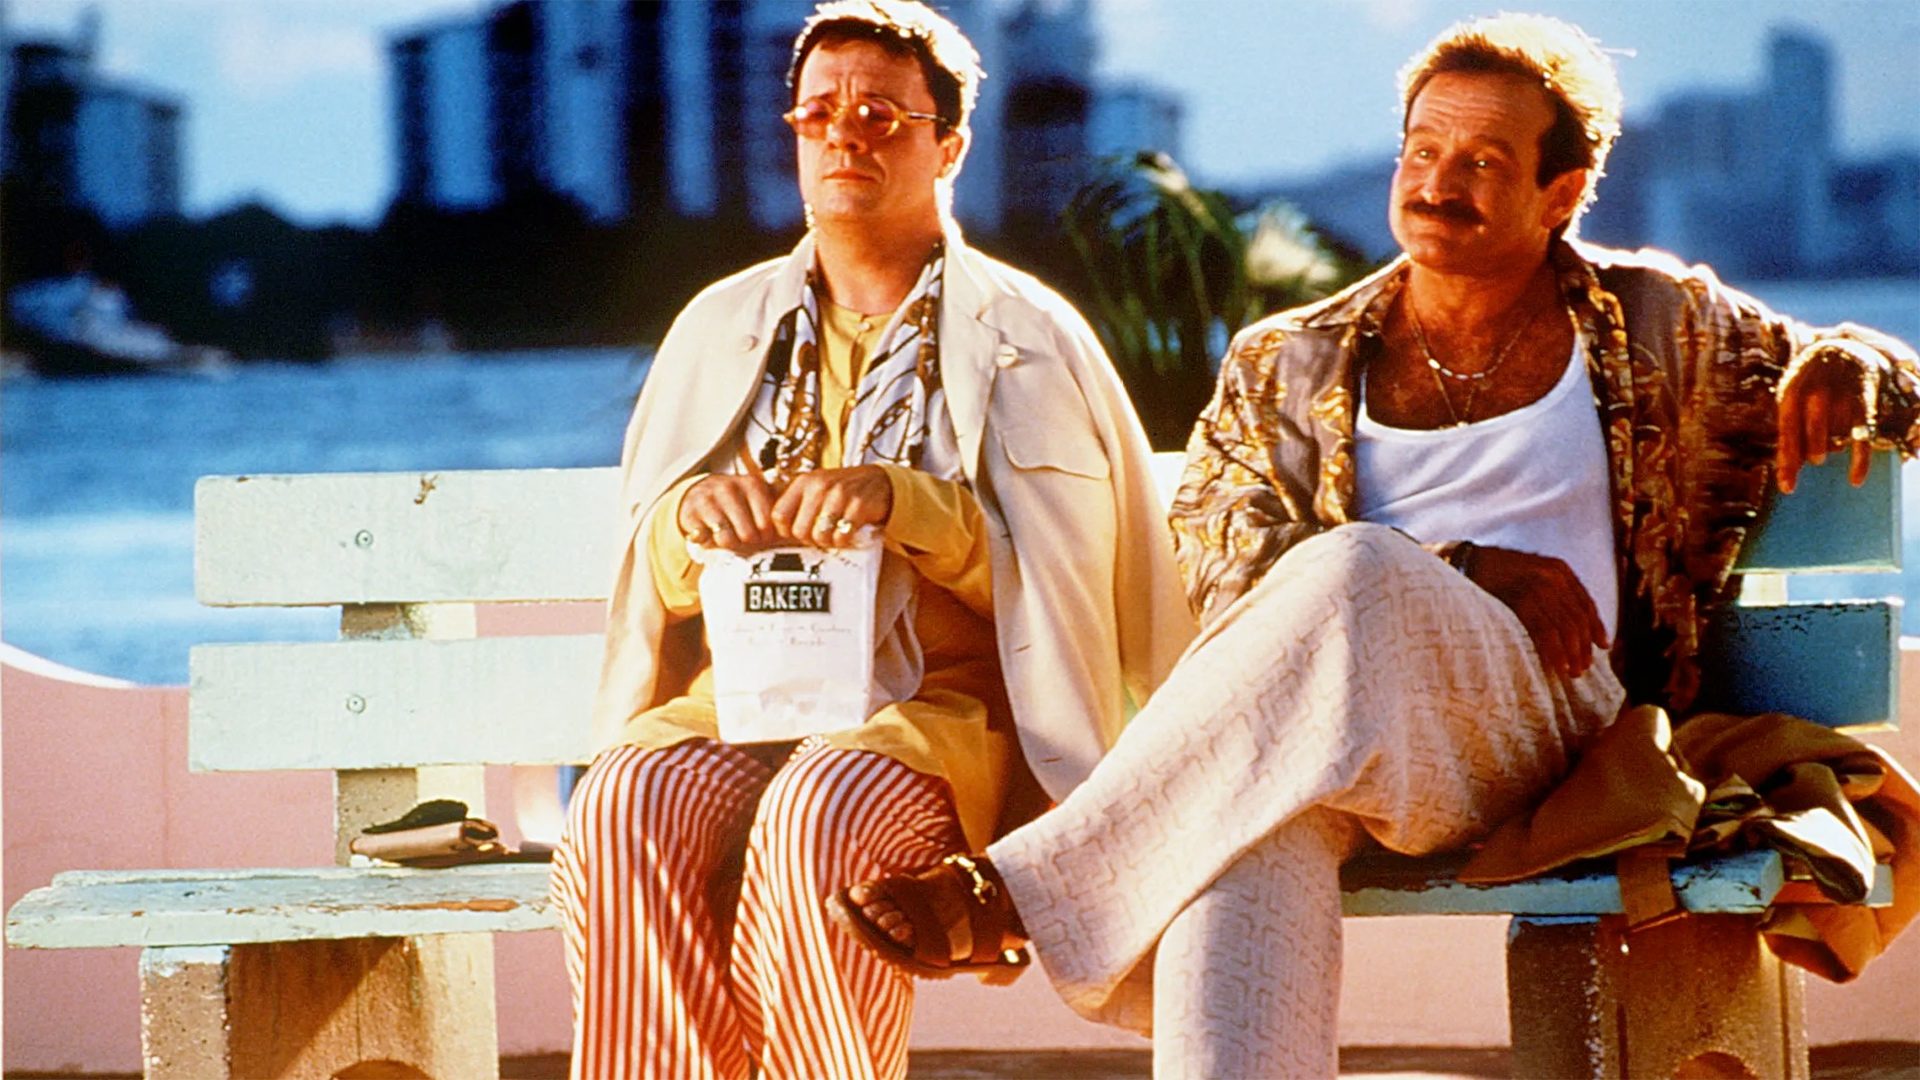 Nathan Lane and Robin Williams sitting on a bench in a scene from The Birdcage